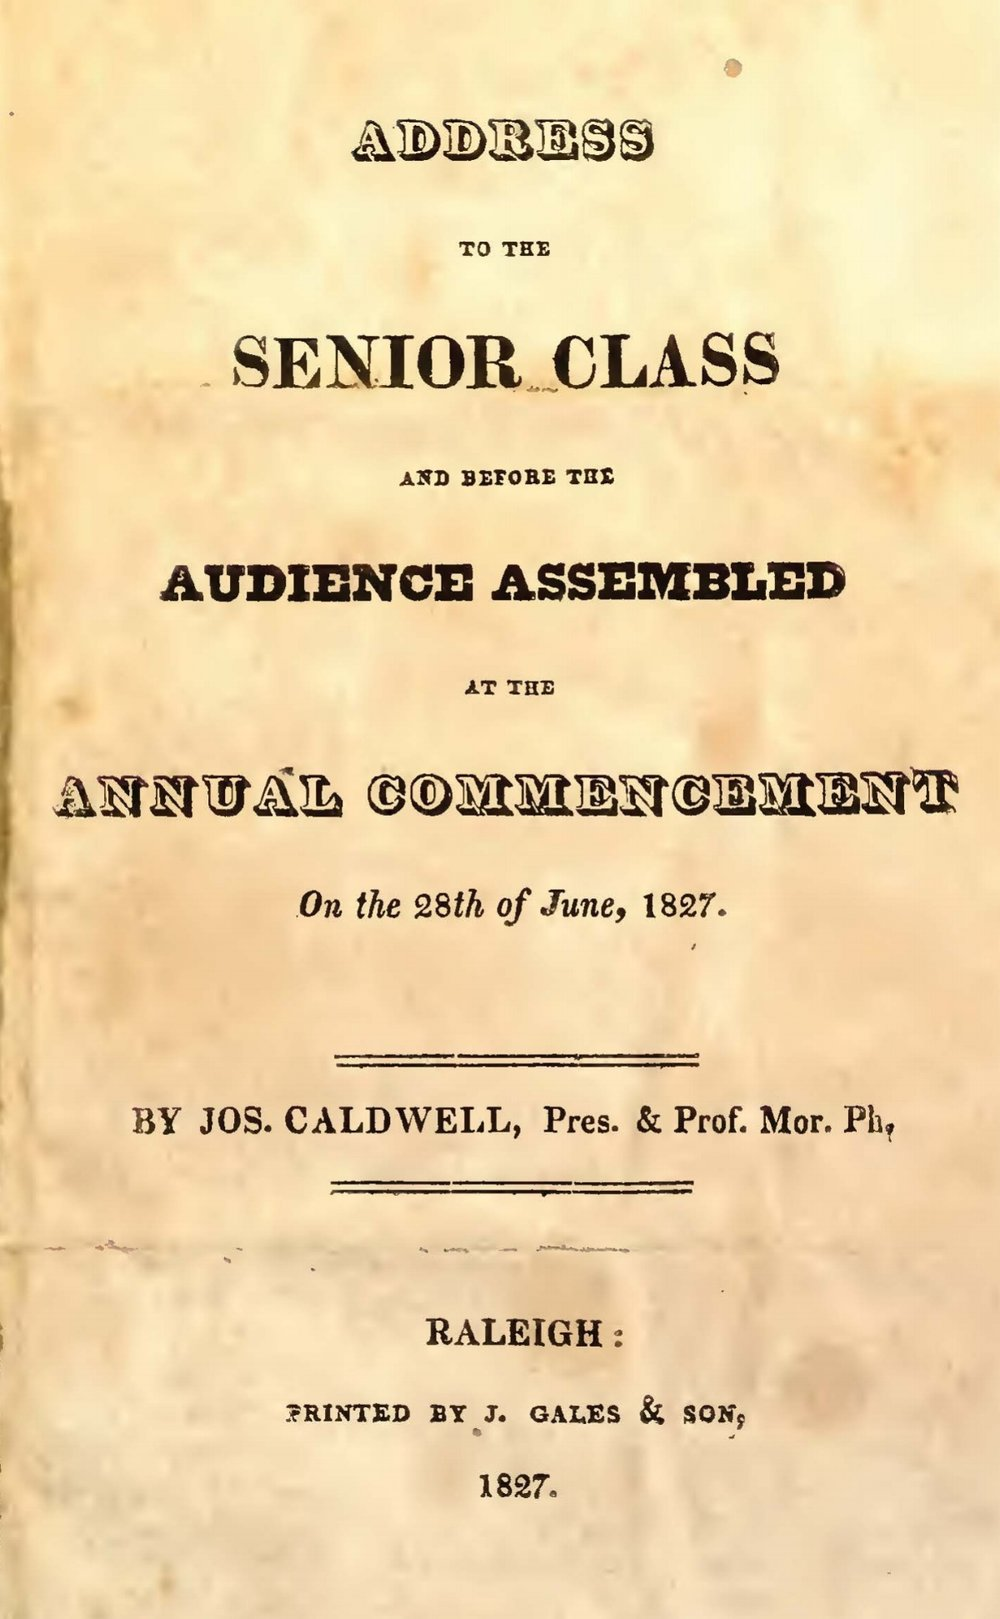 Caldwell, Joseph, Address to the Senior Class Title Page.jpg